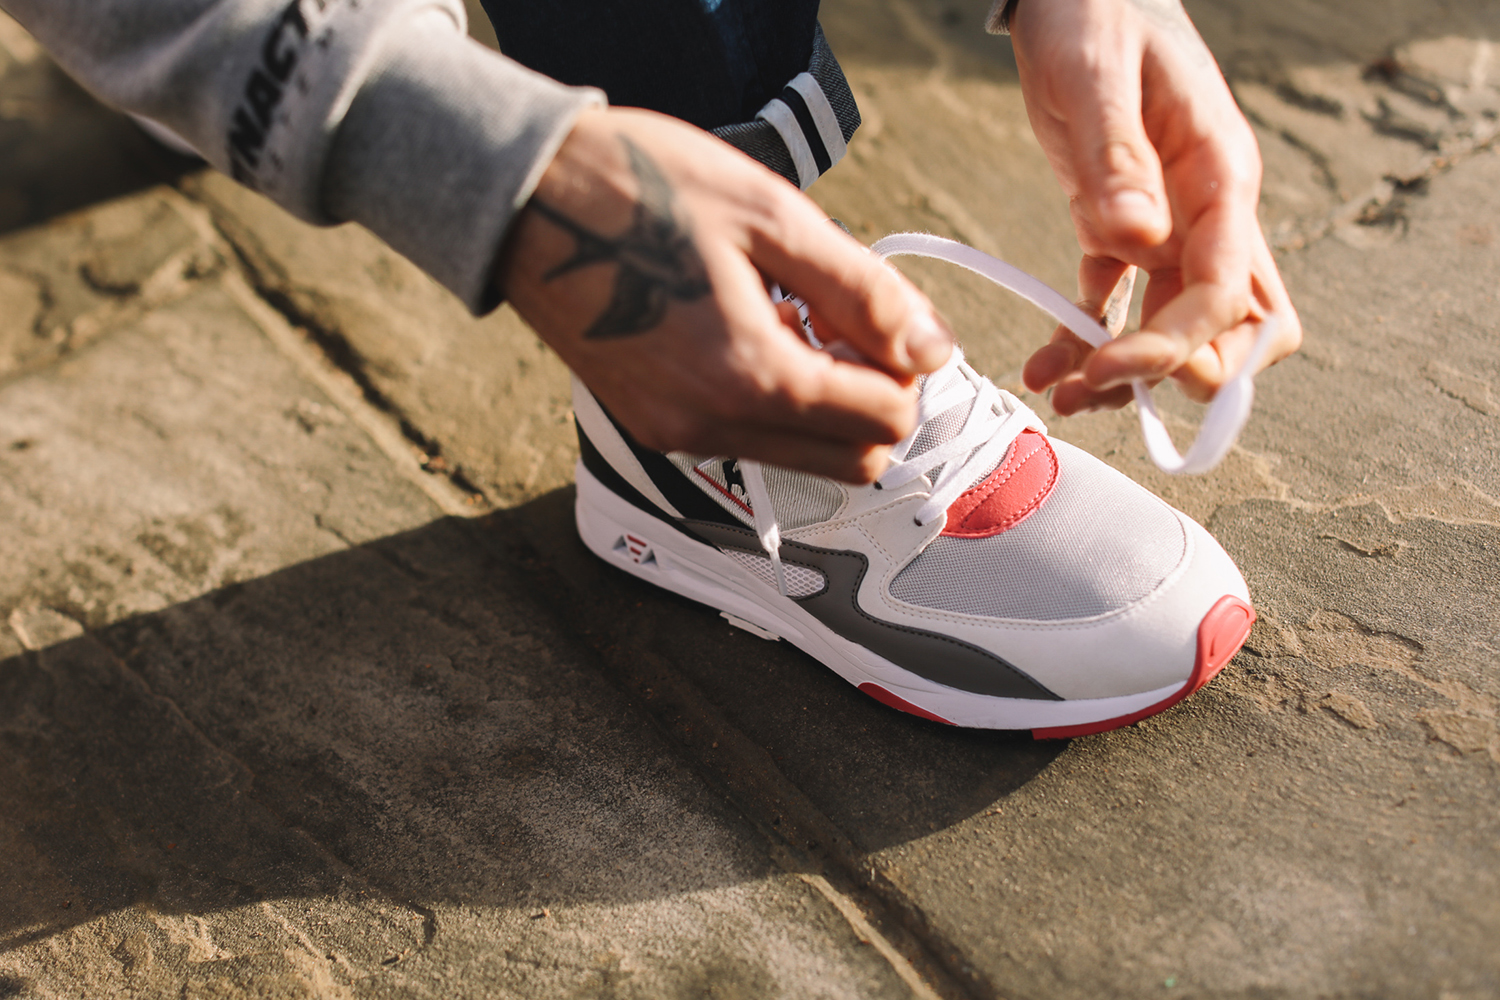 Le Coq Sportif 25th Anniversary Dynactif Collection